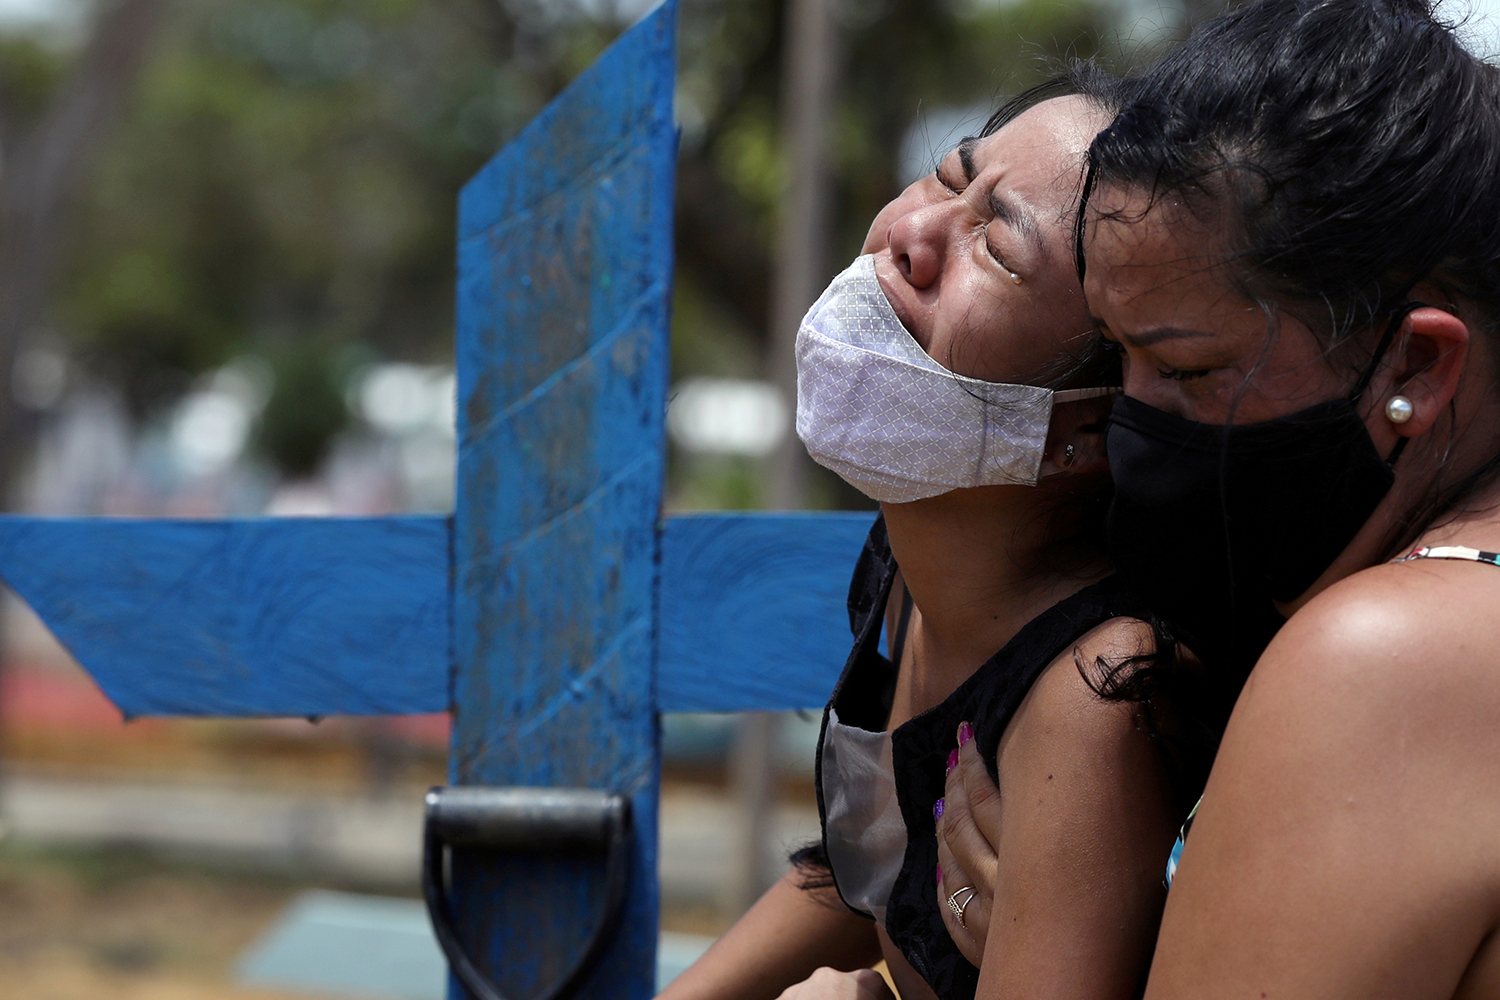 Kelvia Andrea Goncalves, 16, is embraced her aunt Vanderleia dos Reis Brasao during the burial of her mother, who died from COVID-19, at the Parque Taruma cemetery in Manaus, Brazil, on Jan. 17. Bruno Kelly/Reuters